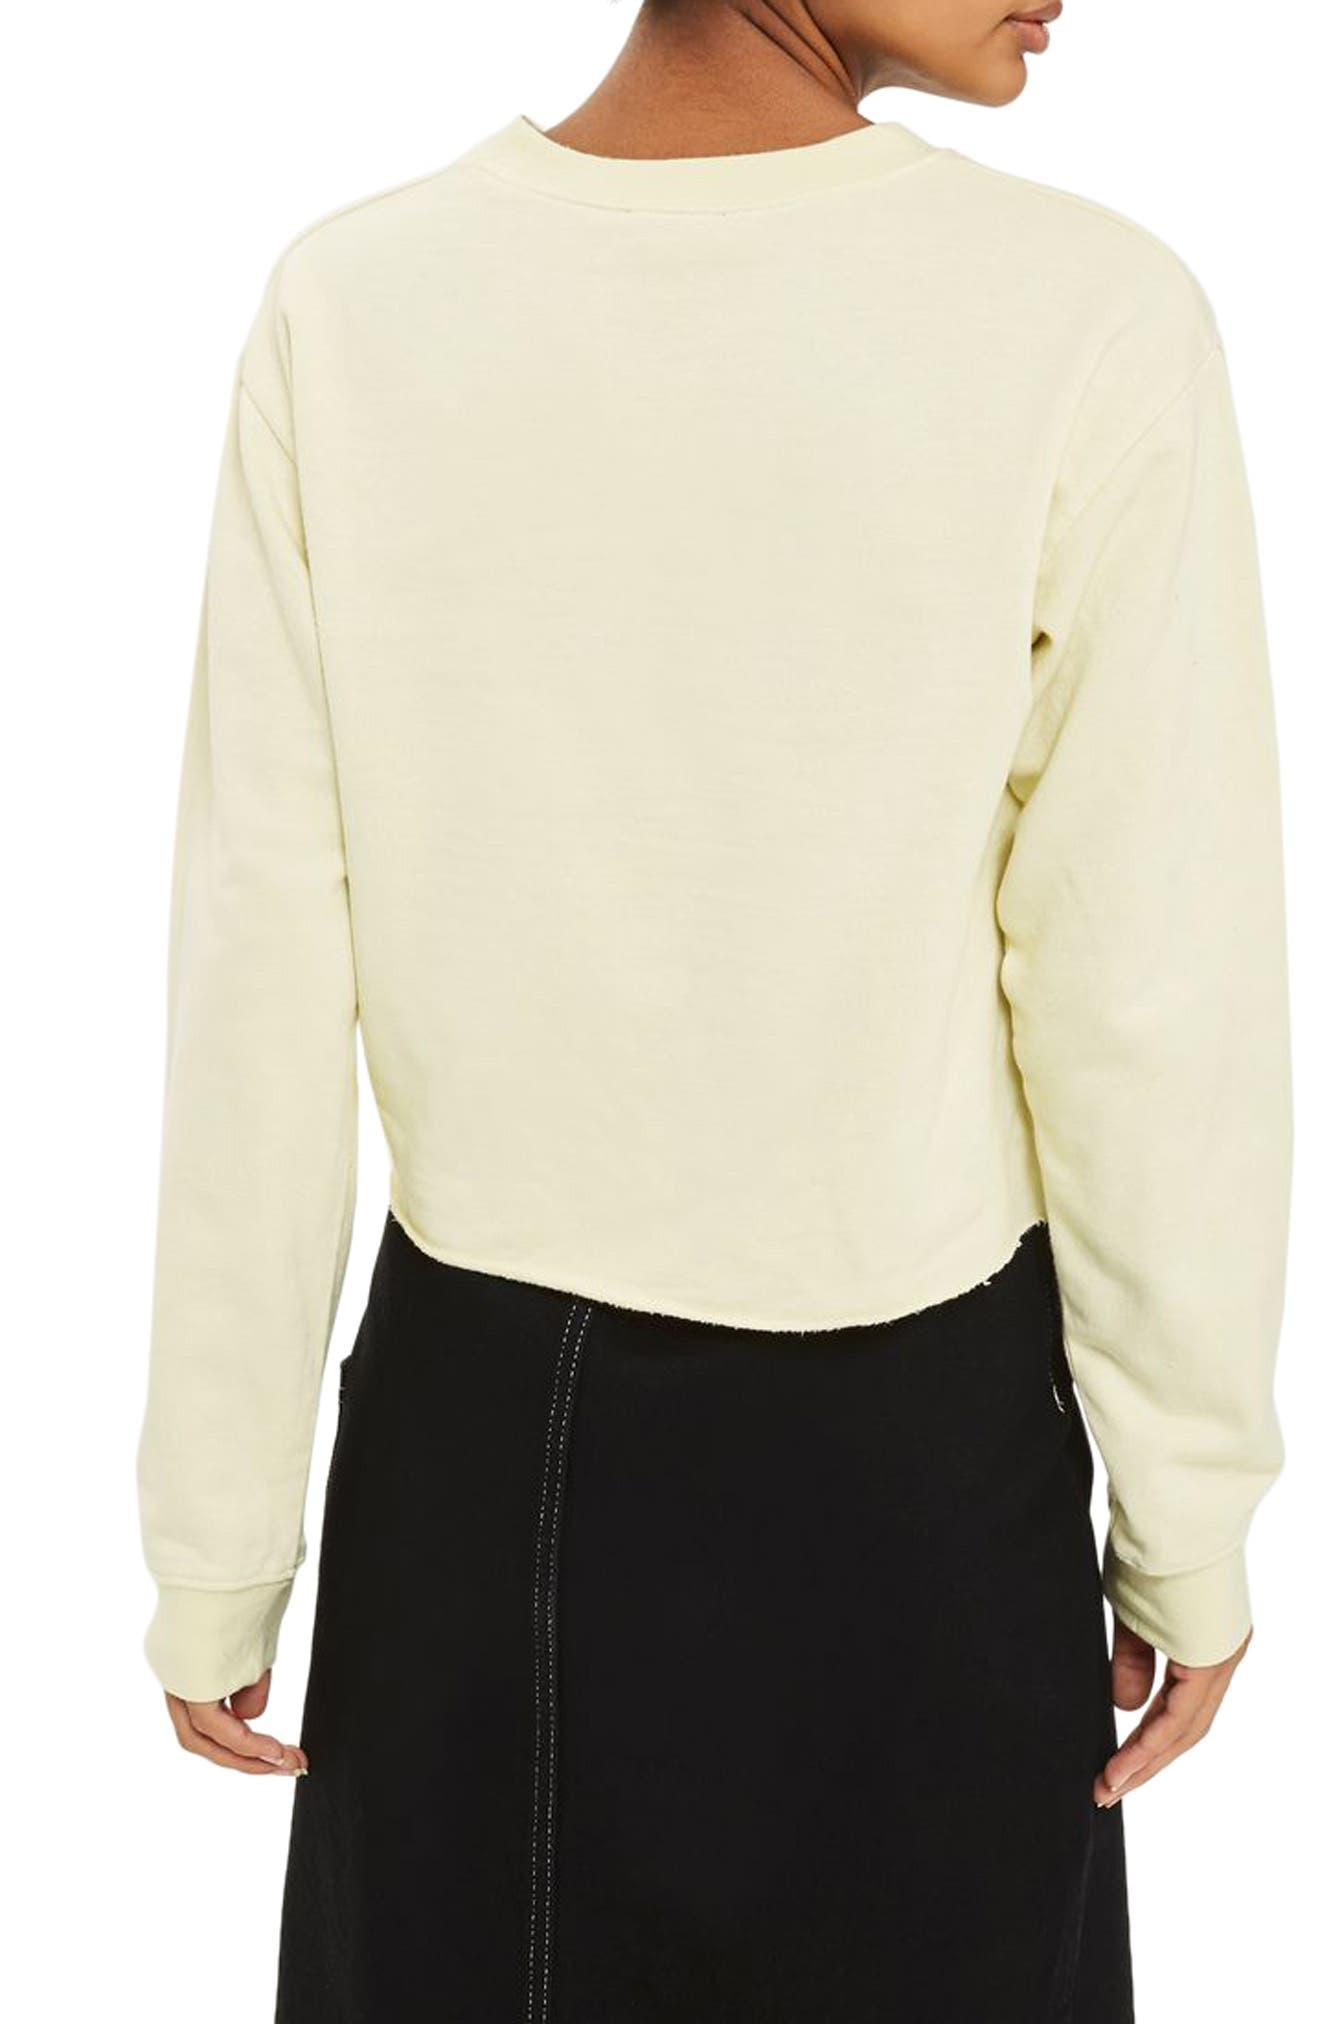 Bronx Cropped Sweatshirt,                             Alternate thumbnail 3, color,                             Yellow